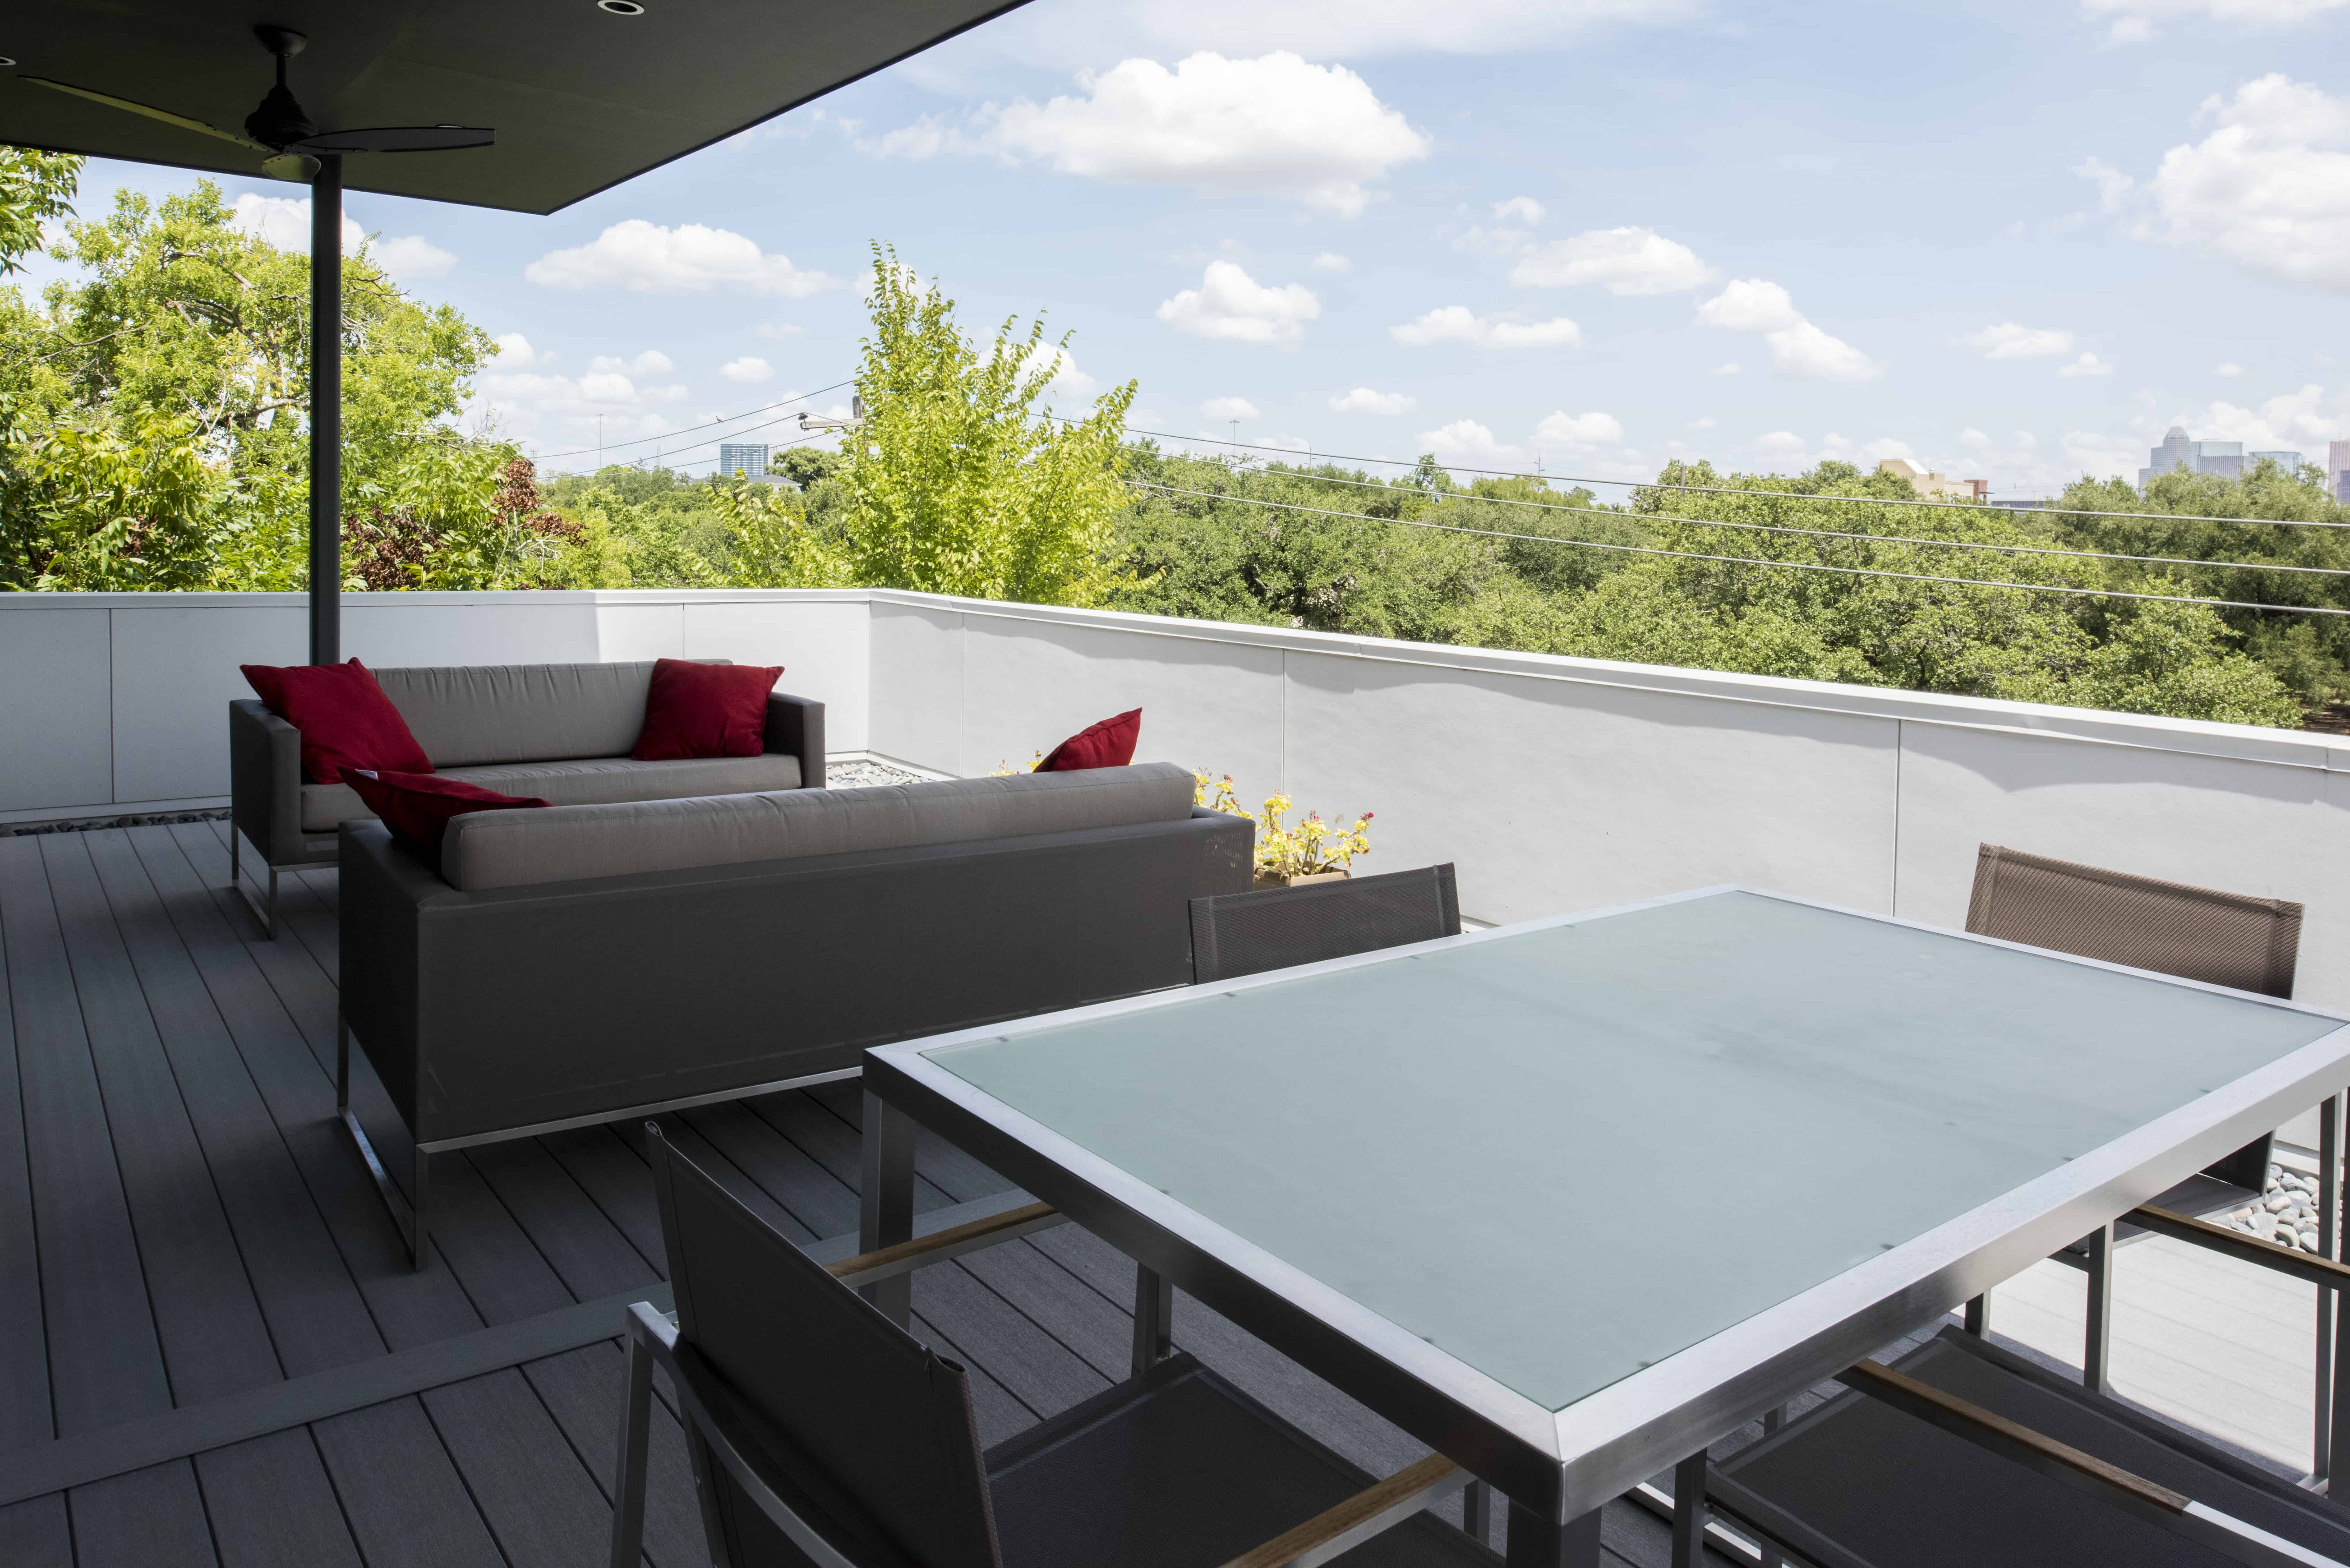 Empty Nester Modern Home with Lock and Leave and Aging in Place Features and downtown view.